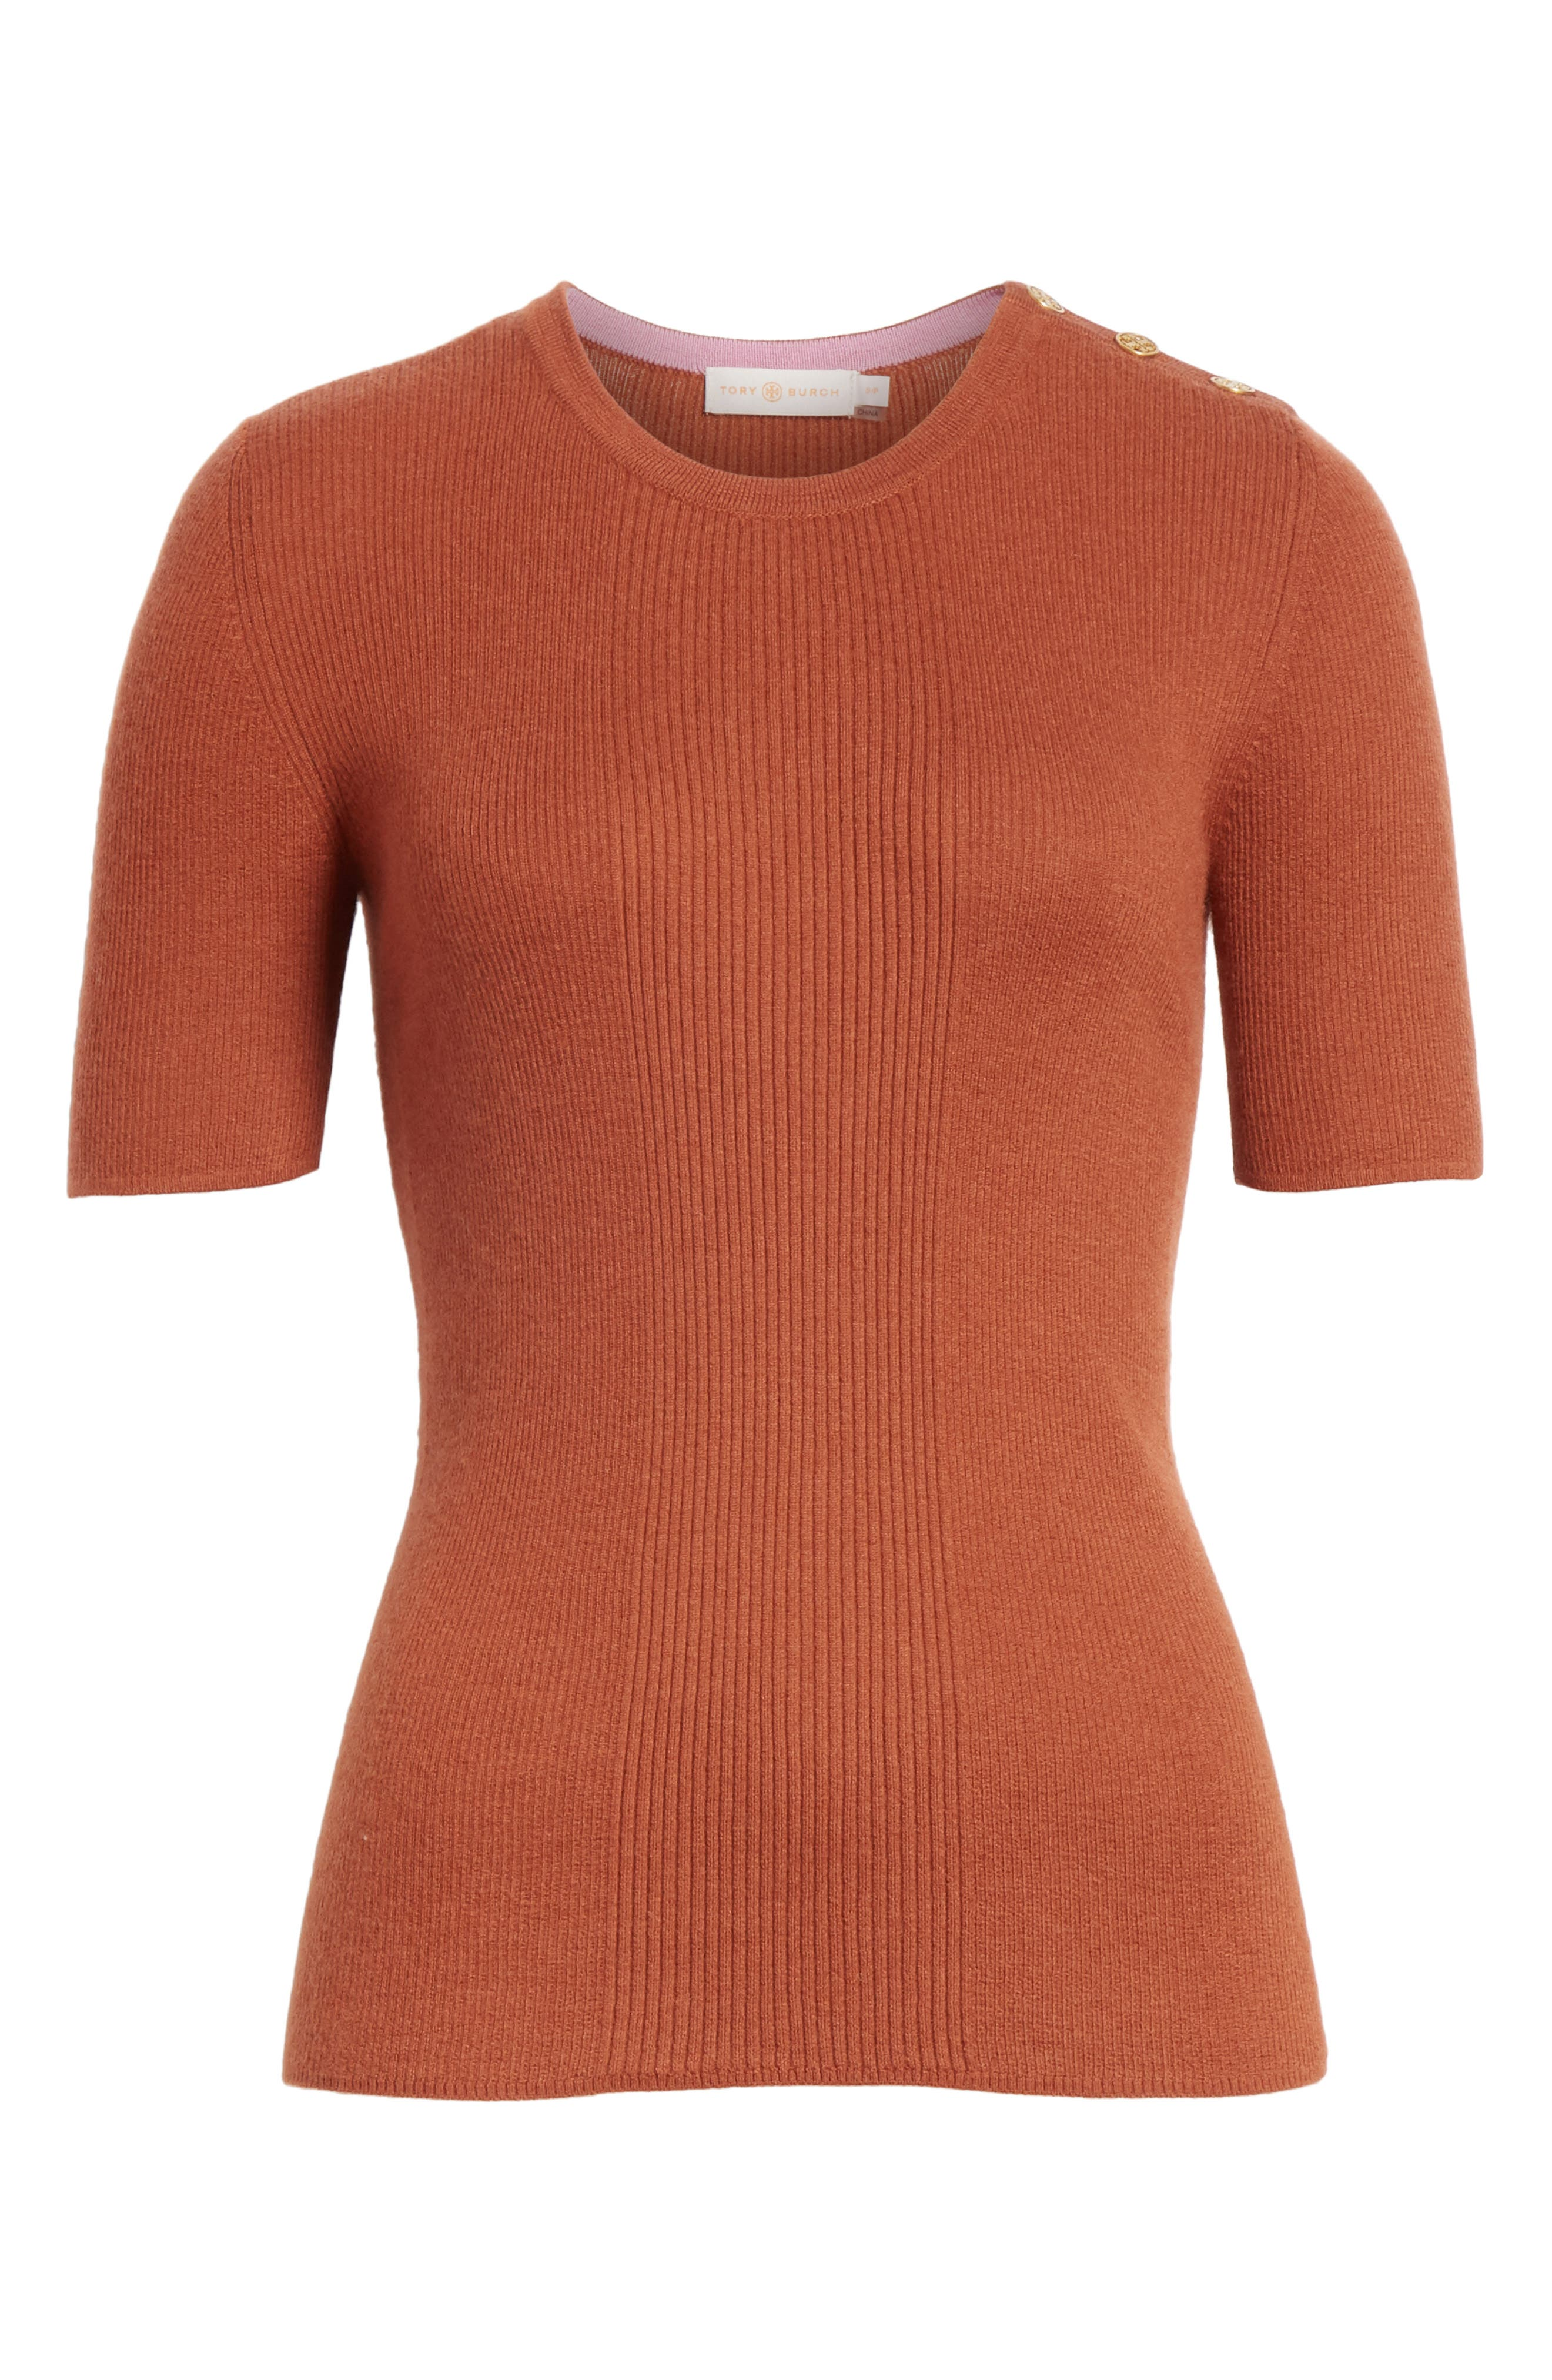 Taylor Ribbed Cashmere Sweater,                             Alternate thumbnail 6, color,                             217